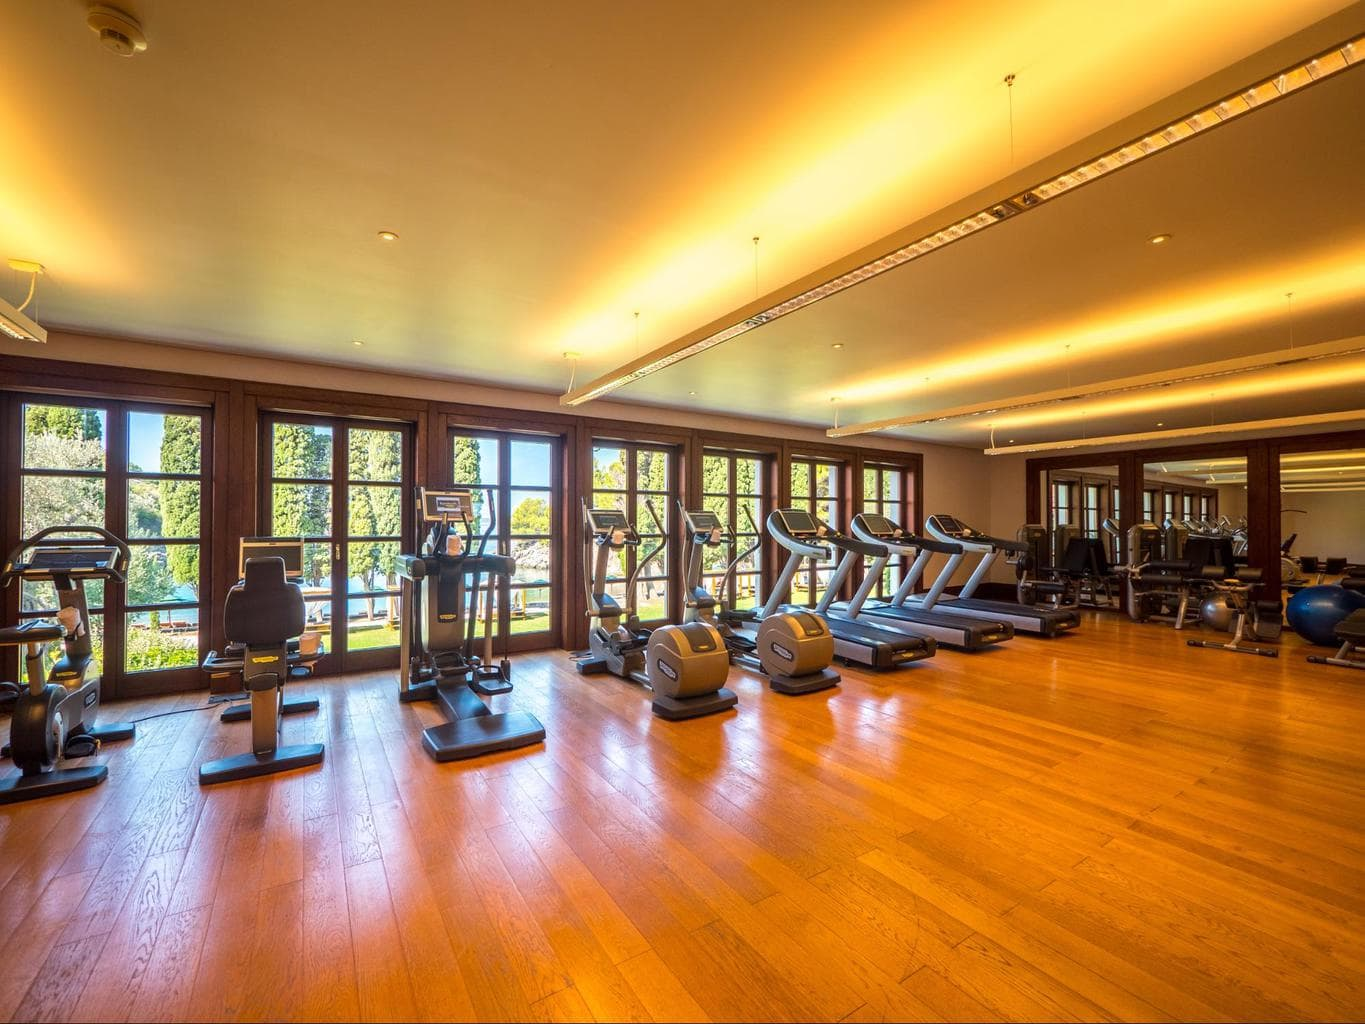 The gym at Aman Sveti Stefan